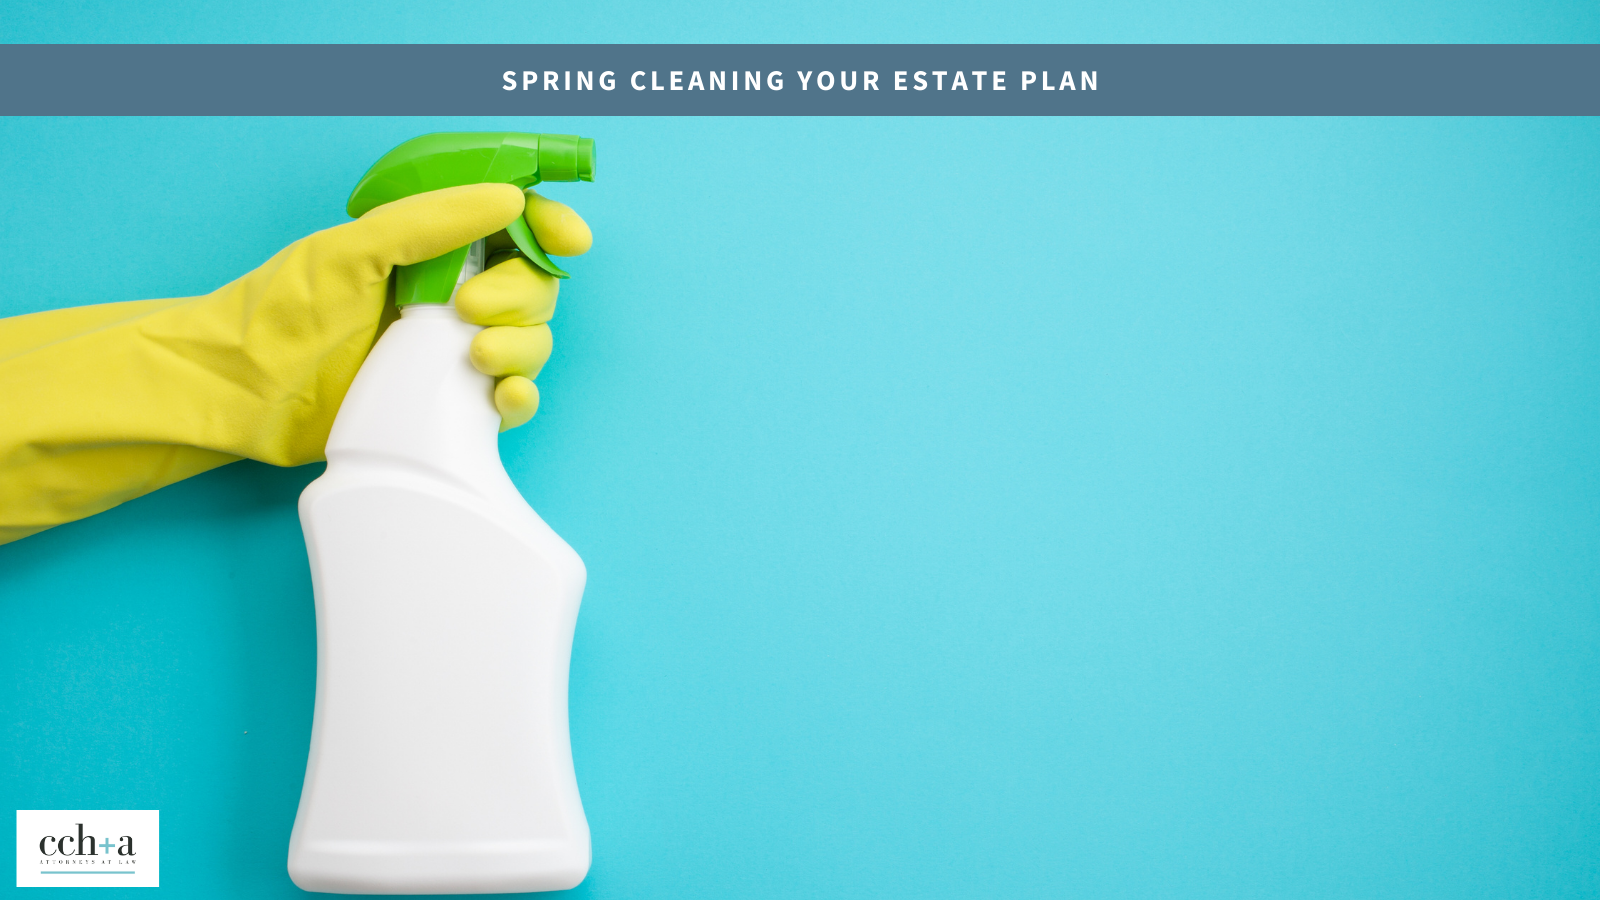 Ccha april 2021 spring cleaning your estate plan tw